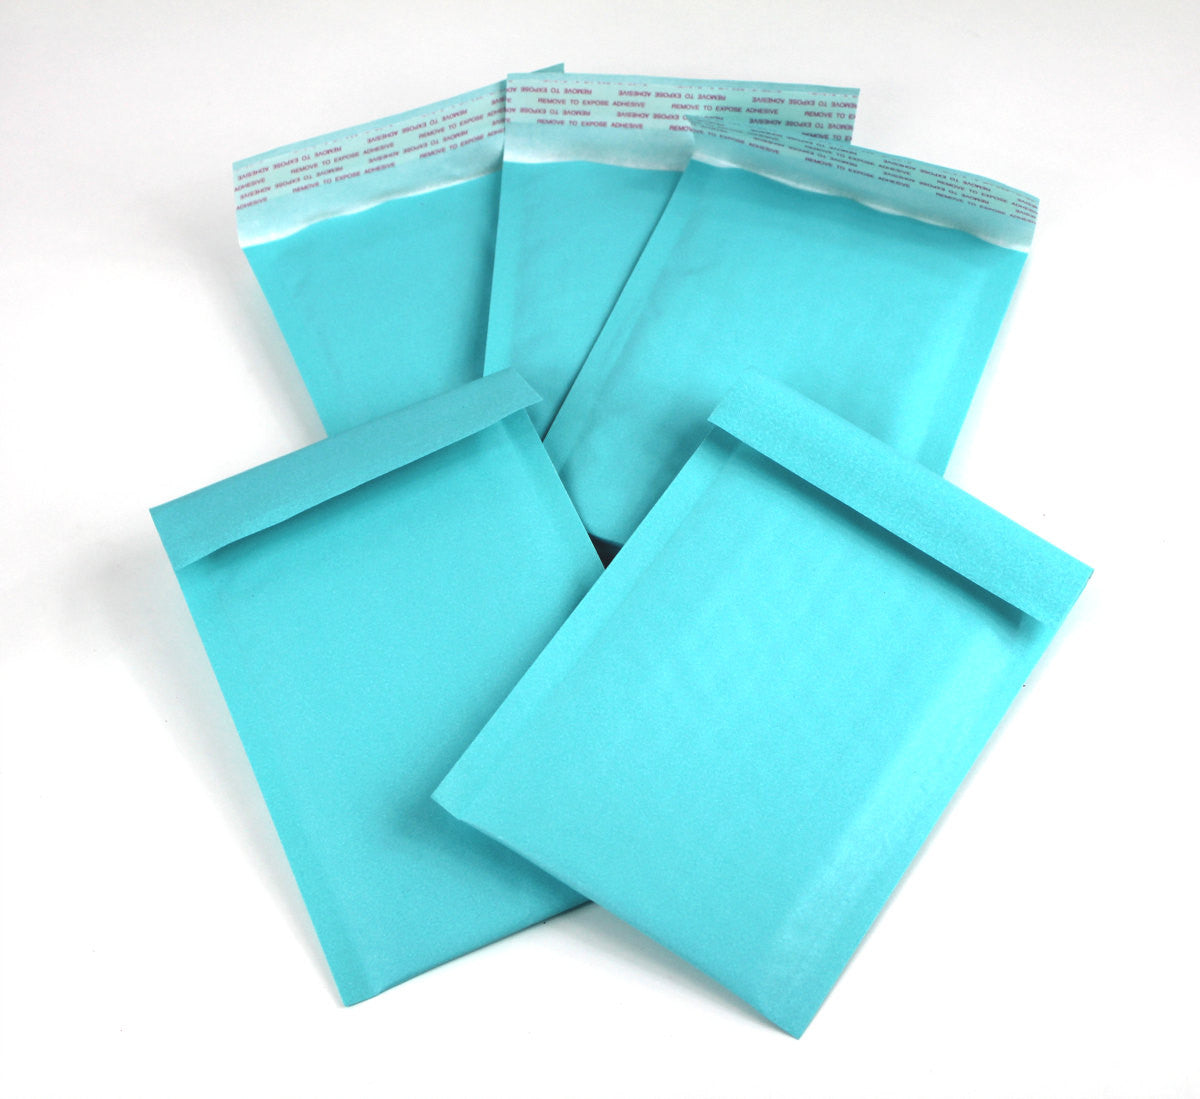 "Exclusive Aqua Kraft 4"" x 8"" Poly Bubble Mailers, #000 Colored Padded Self Adhesive Envelopes - Wrappingmeup"